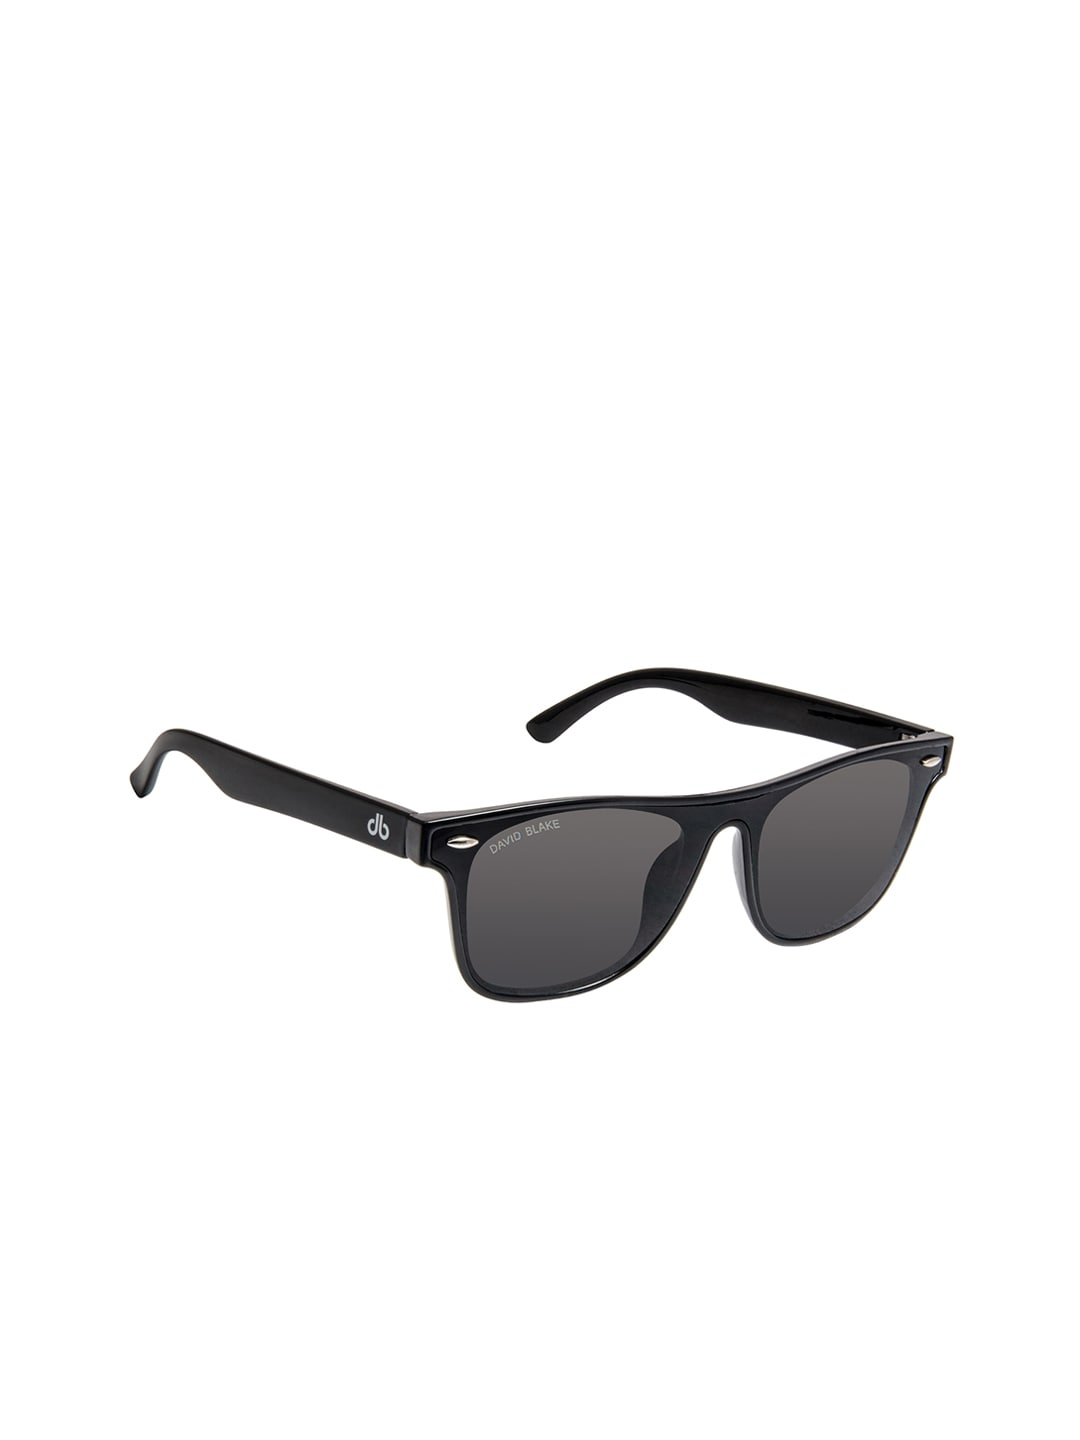 8837e17d920a Sunglasses Jackets - Buy Sunglasses Jackets online in India